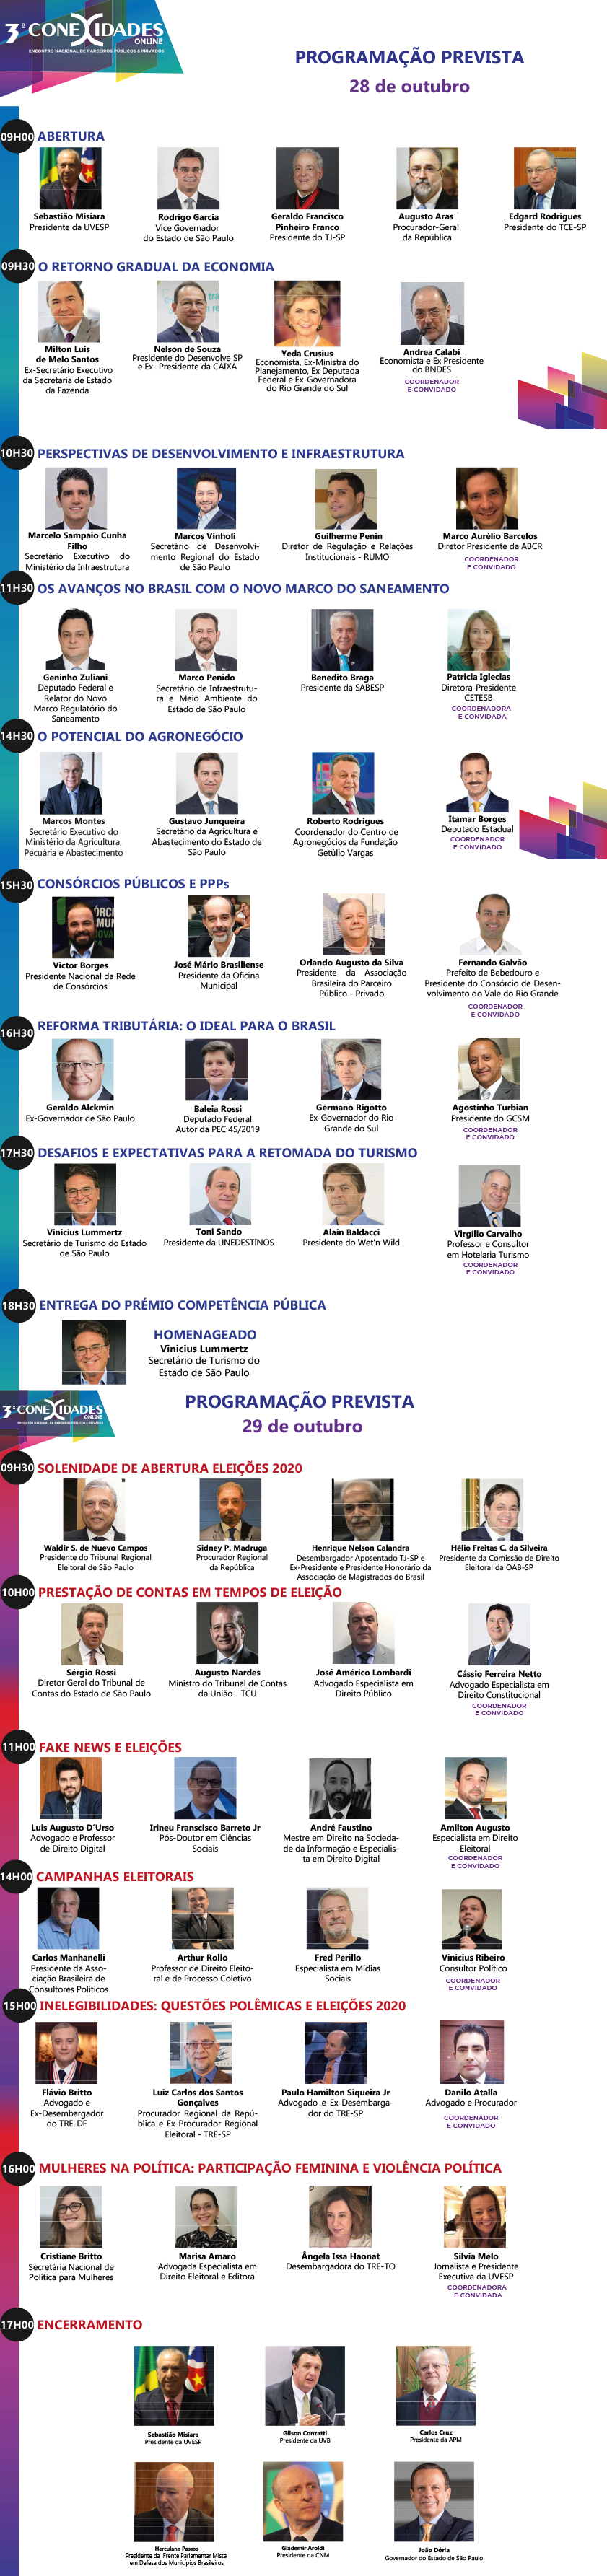 Programacao_Final2.png